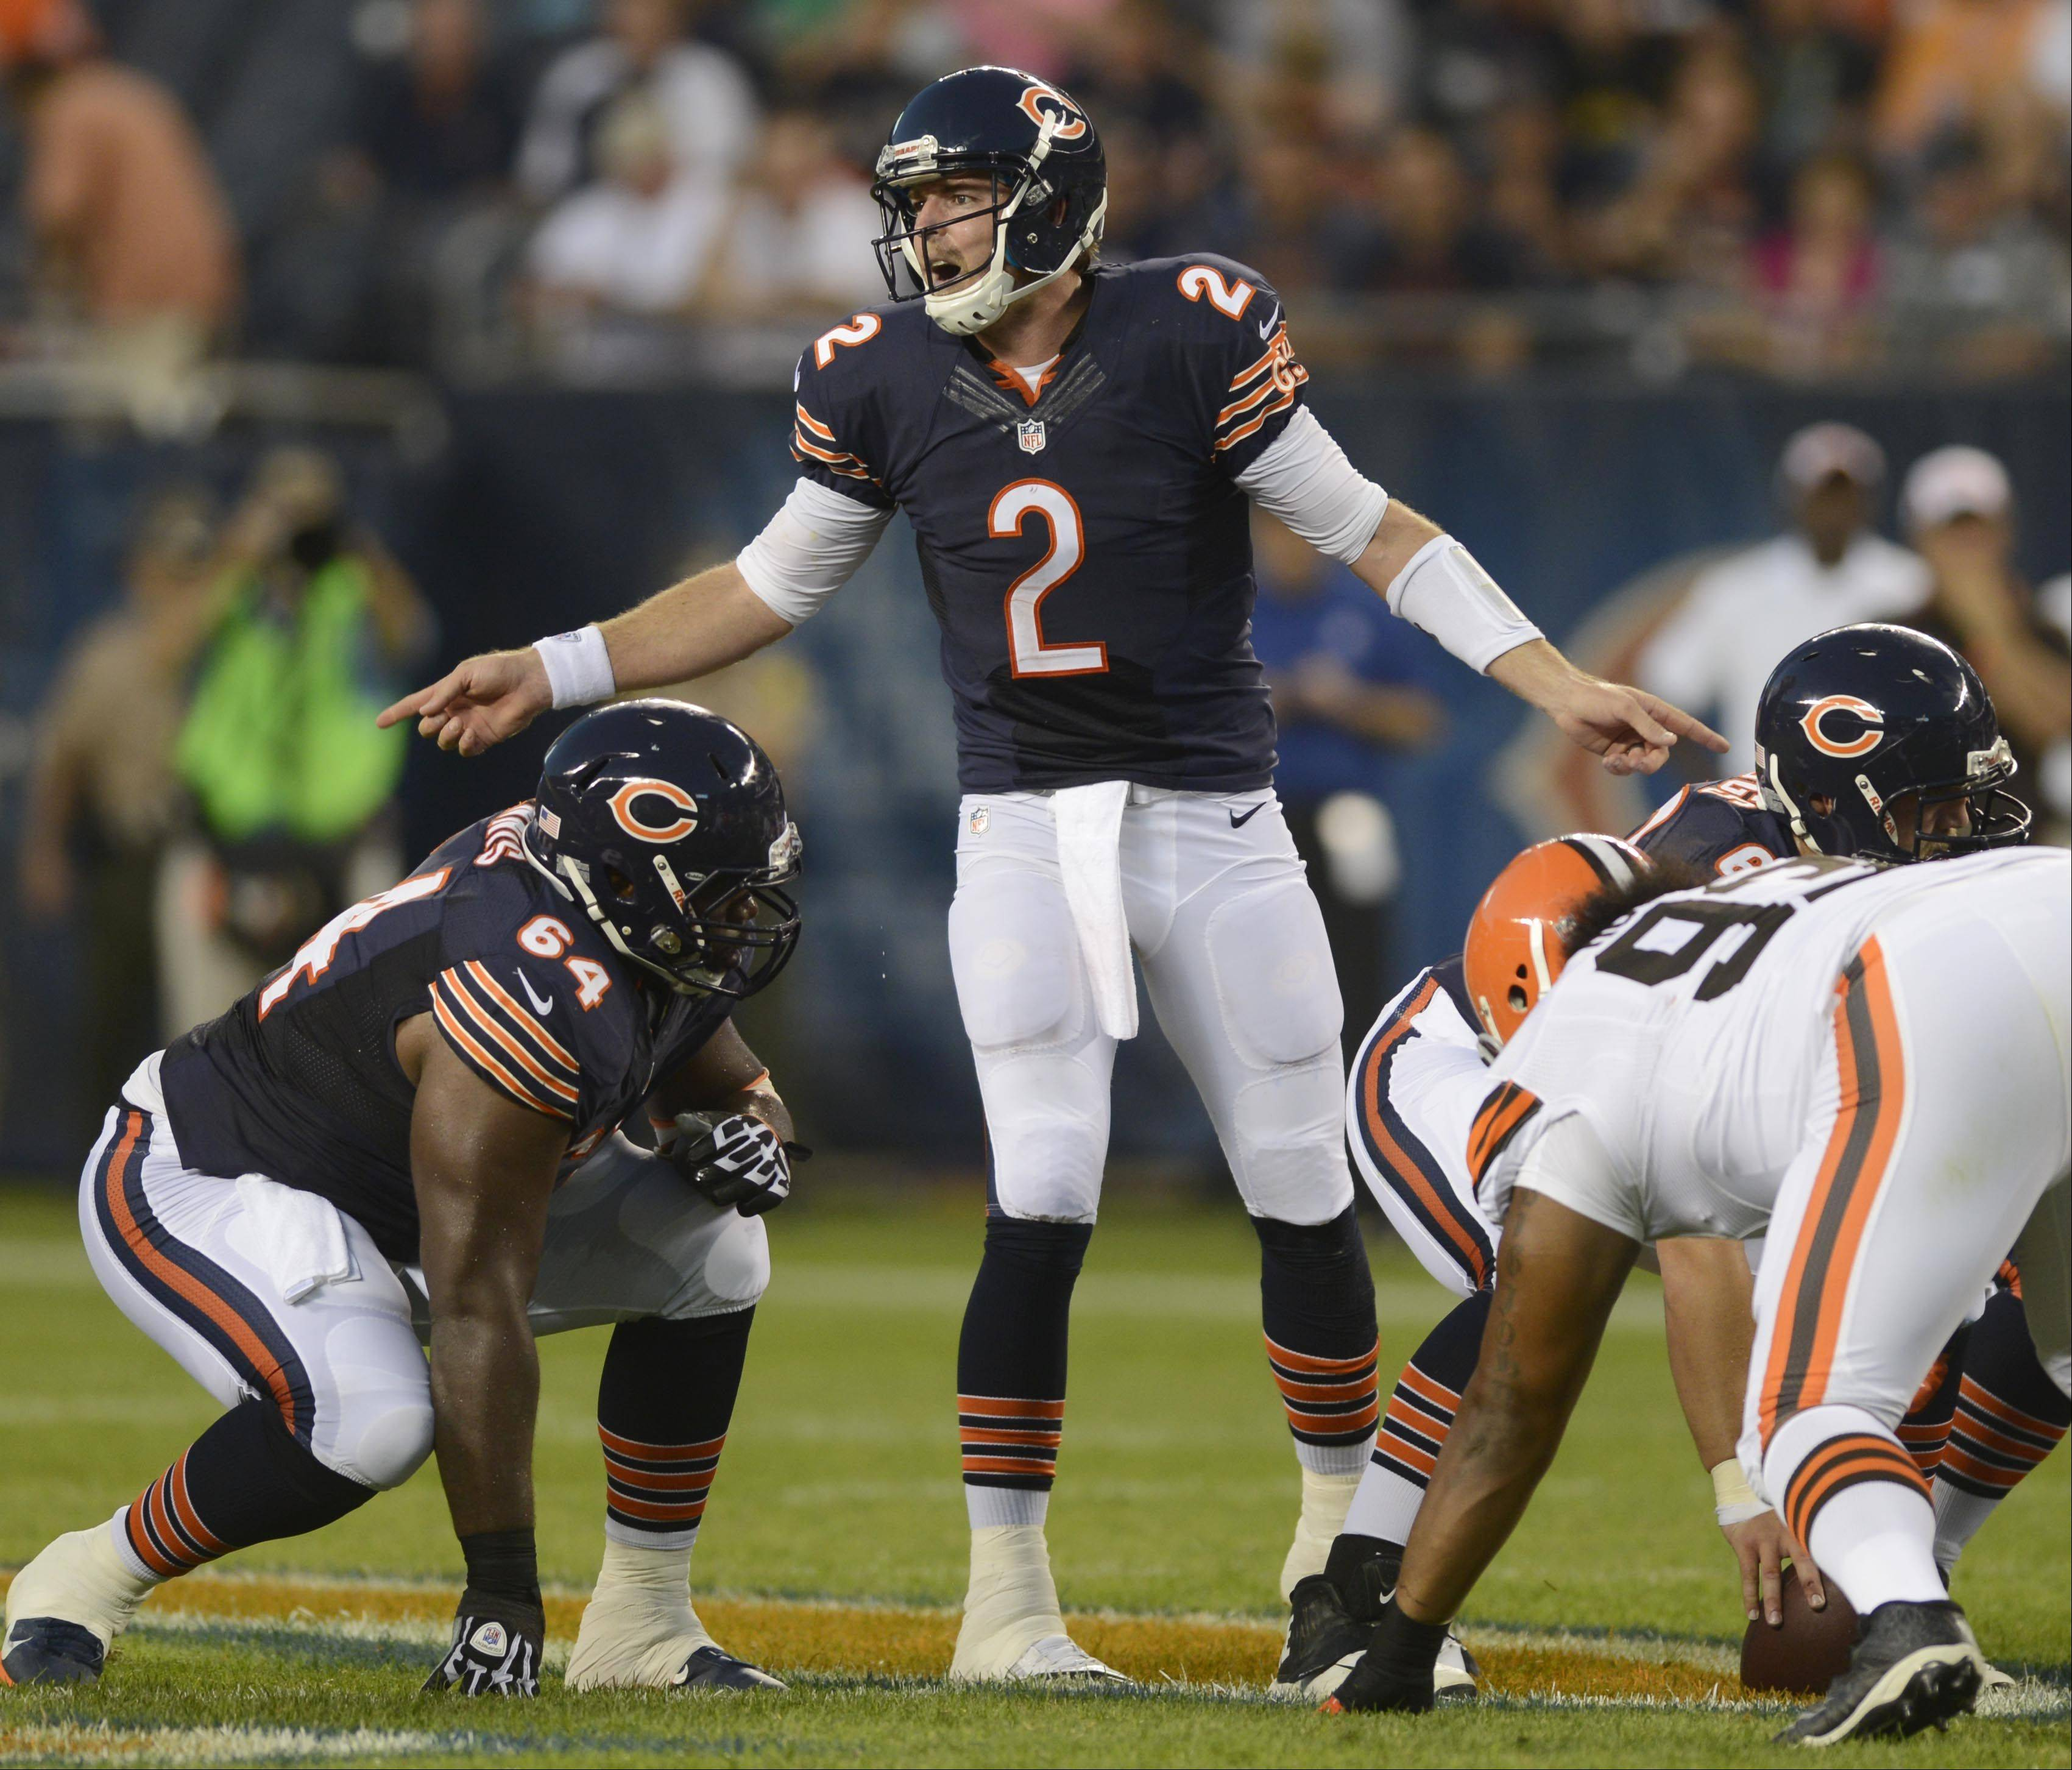 Chicago Bears quarterback Jordan Palmer calls a play.